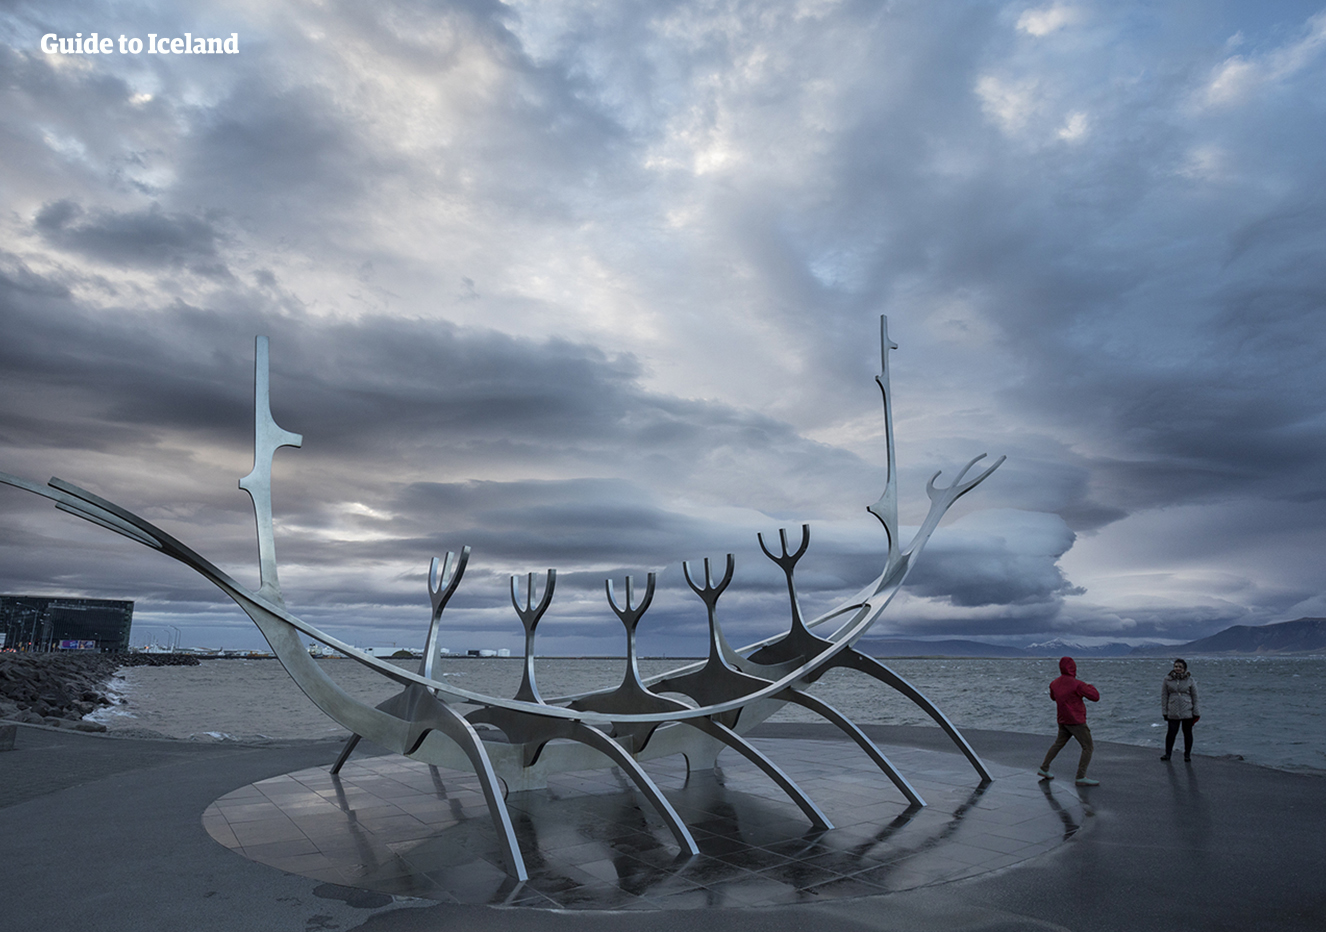 The Sun Voyager Monument on the foreshore of Reykjavik, the capital of Iceland.